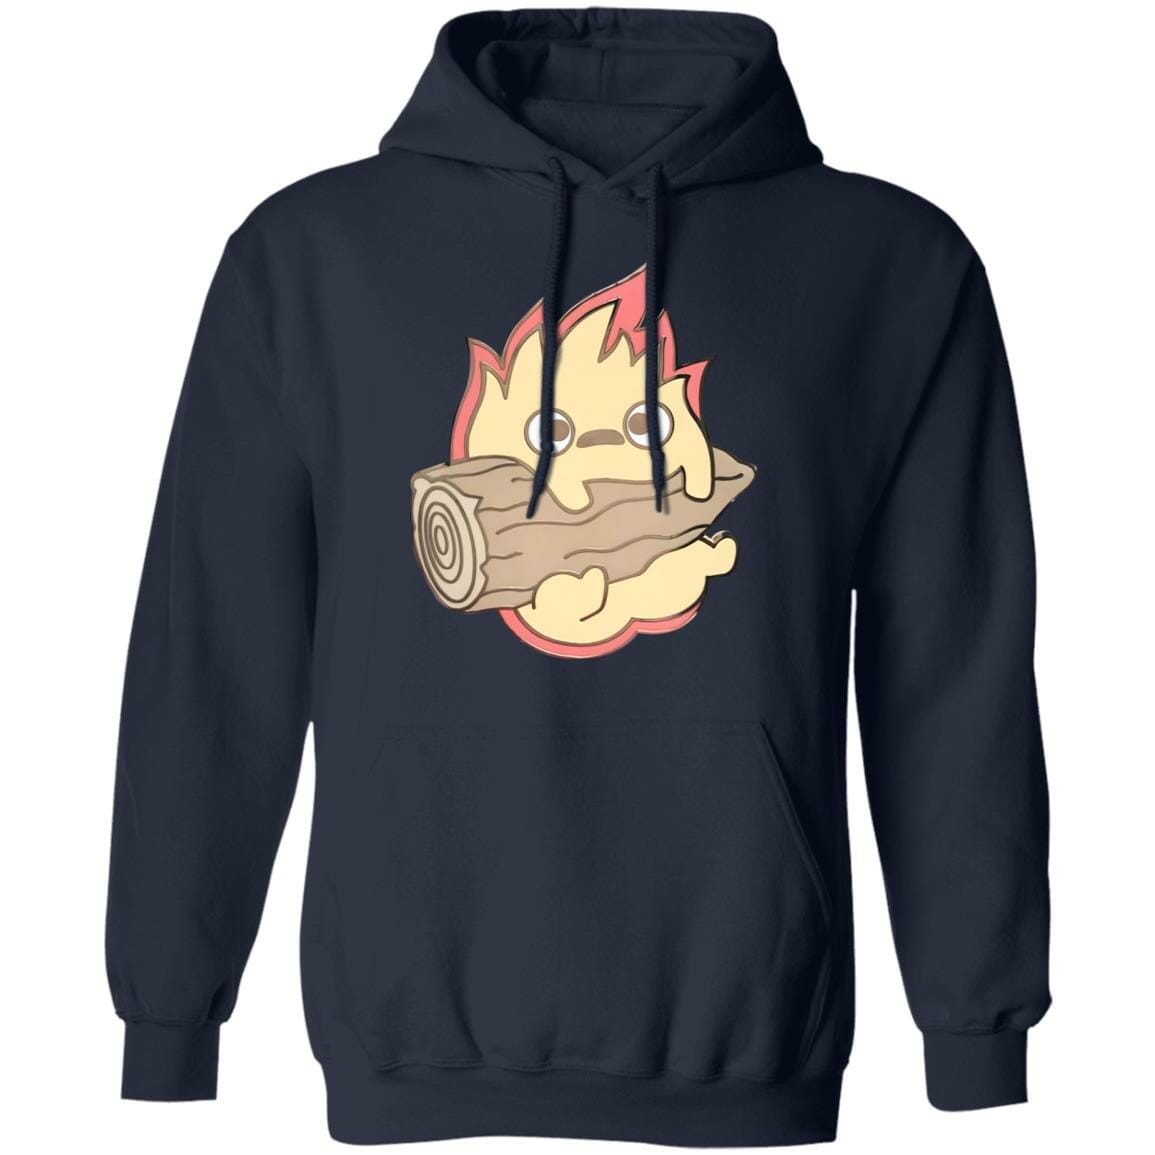 Howl's Moving Castle – Calcifer Chibi Hoodie